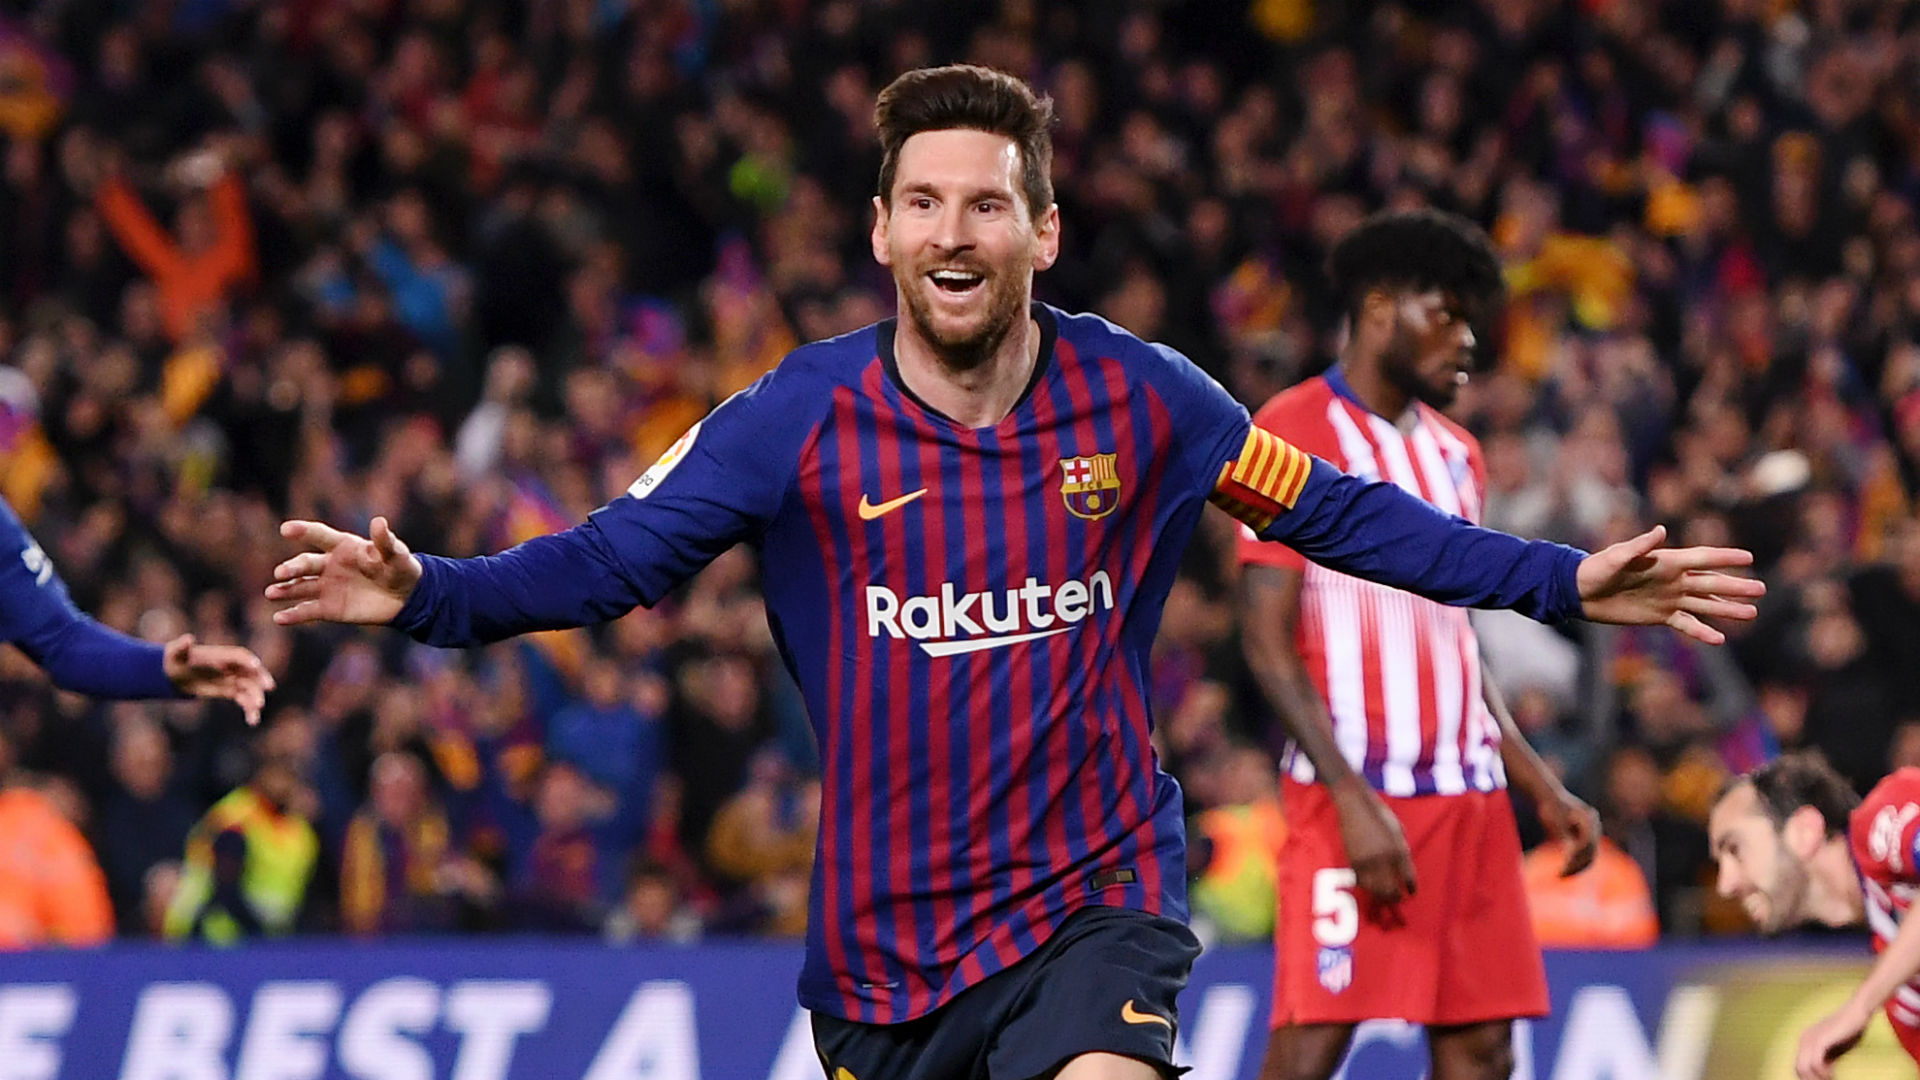 Lionel Messi wins sixth European Golden Shoe